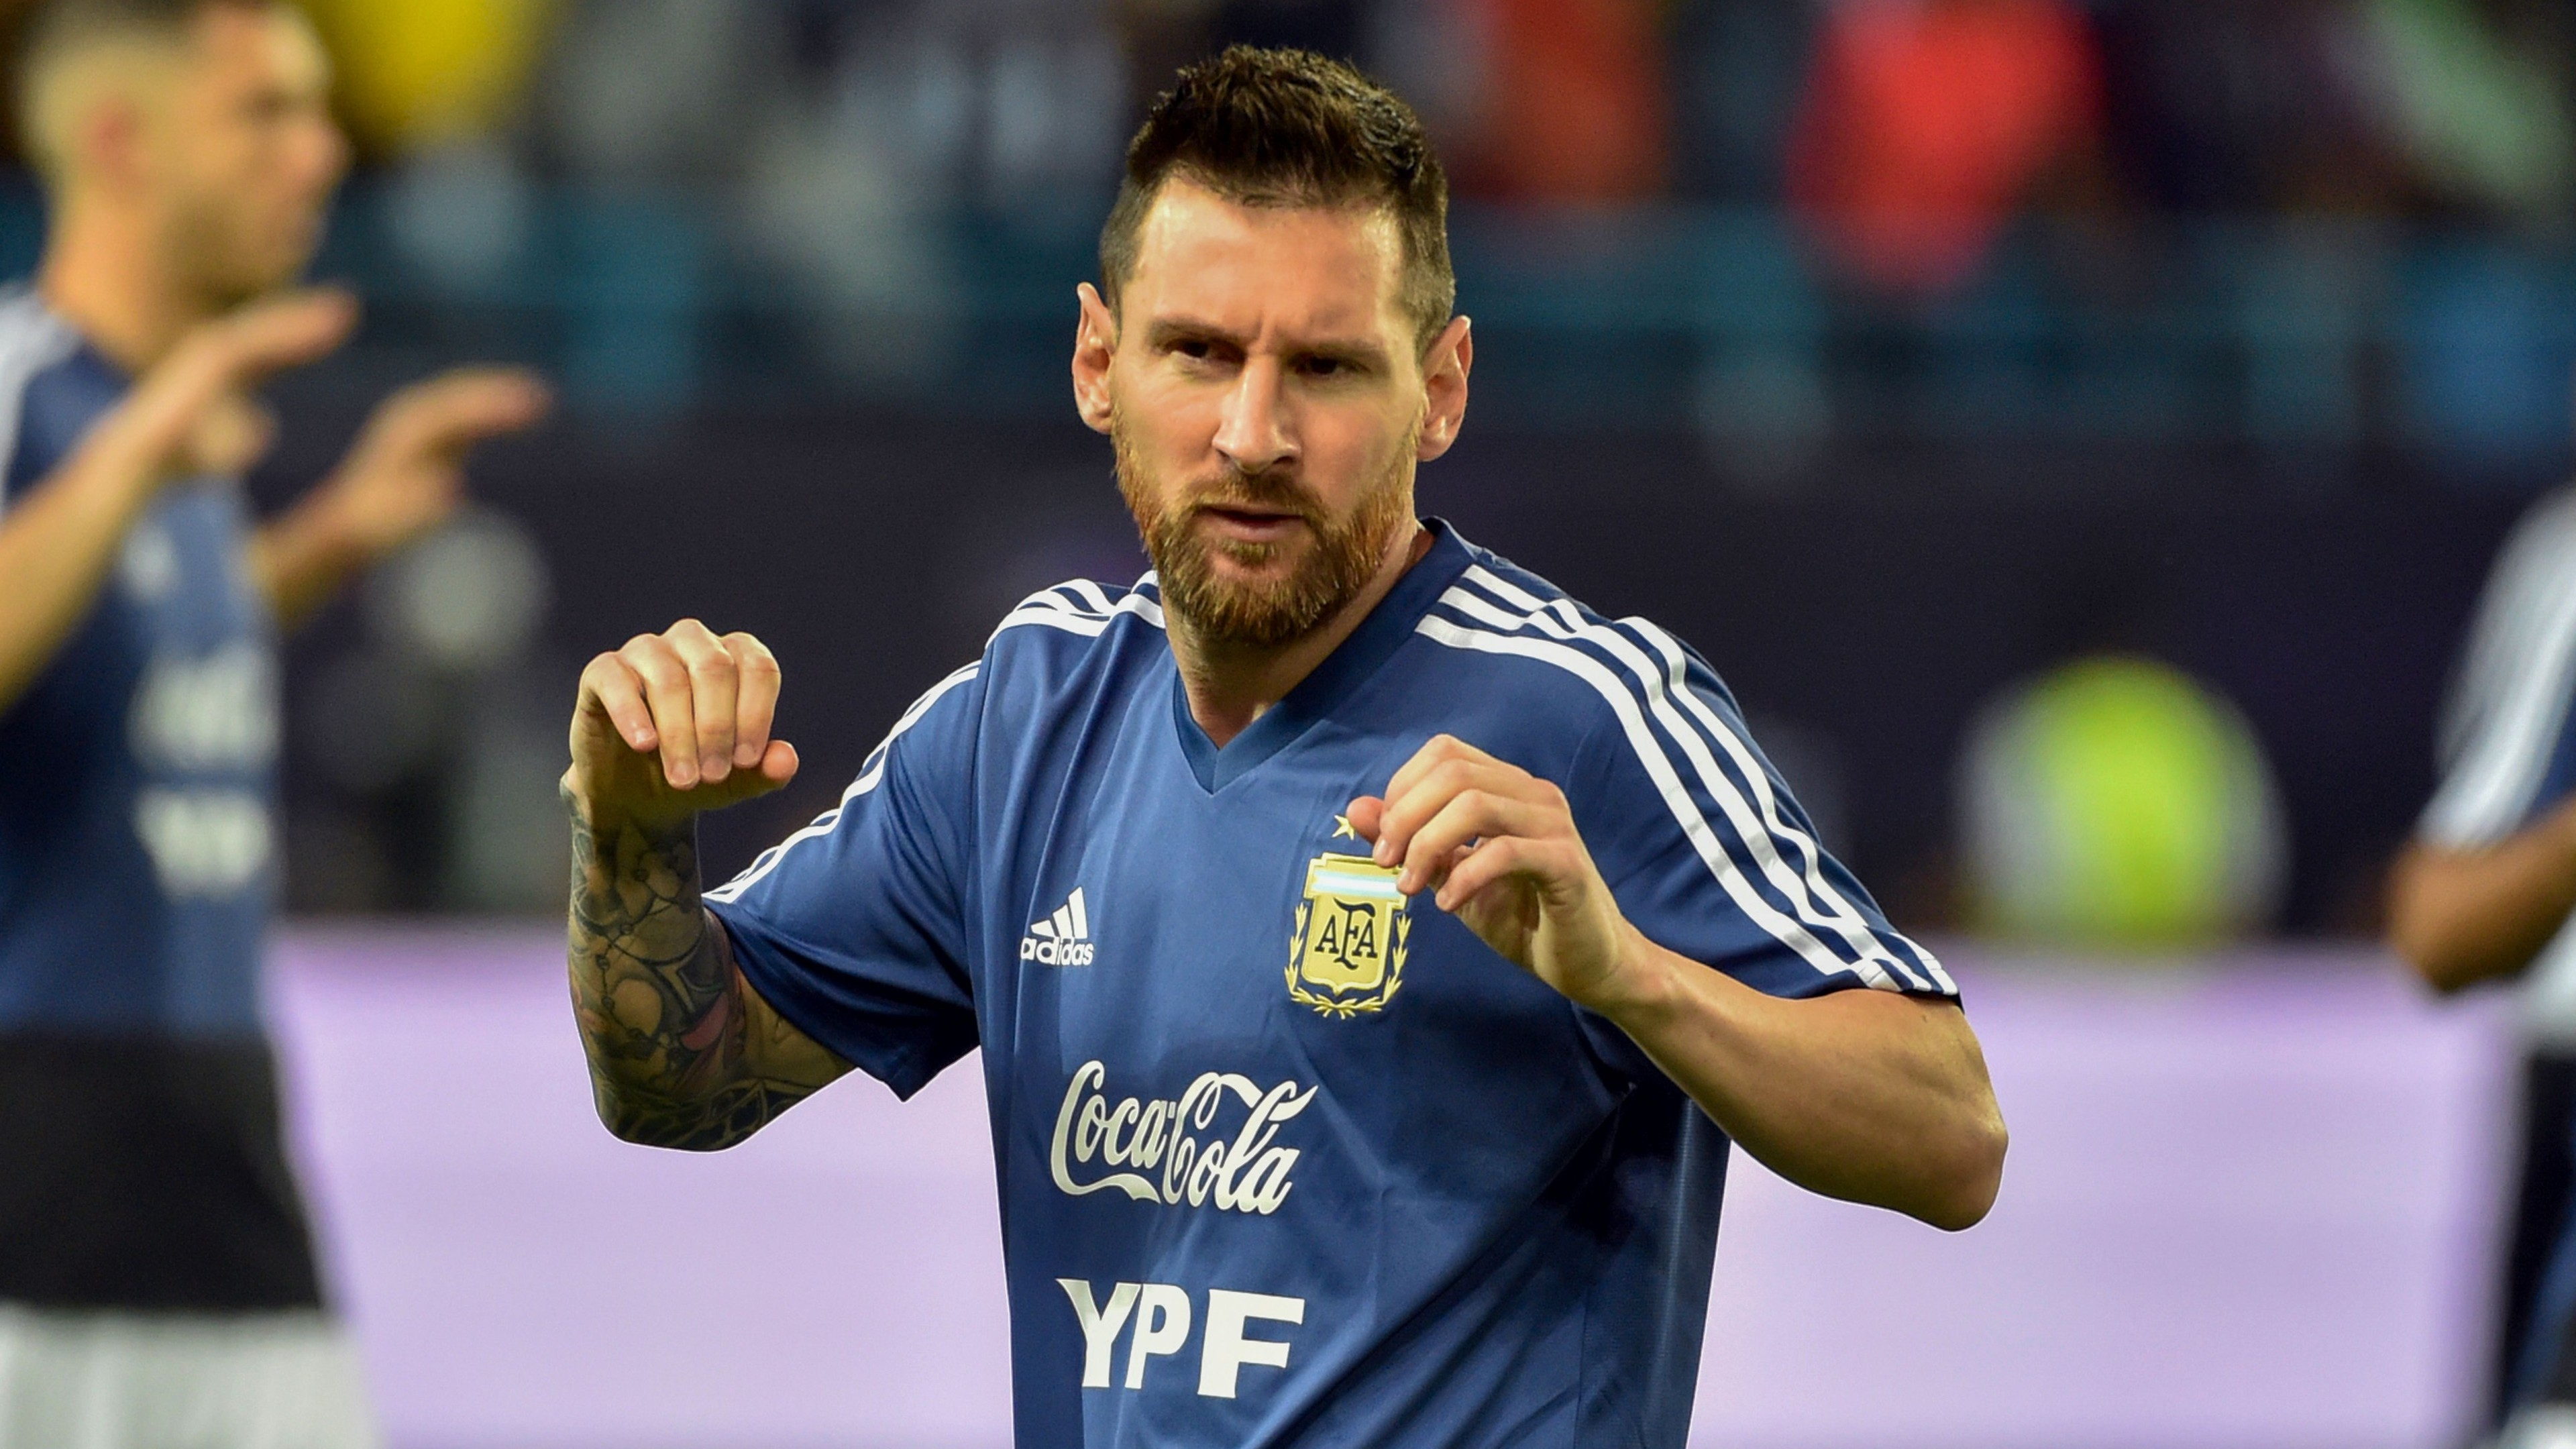 Argentina needs Copa America more than just Messi - Scaloni